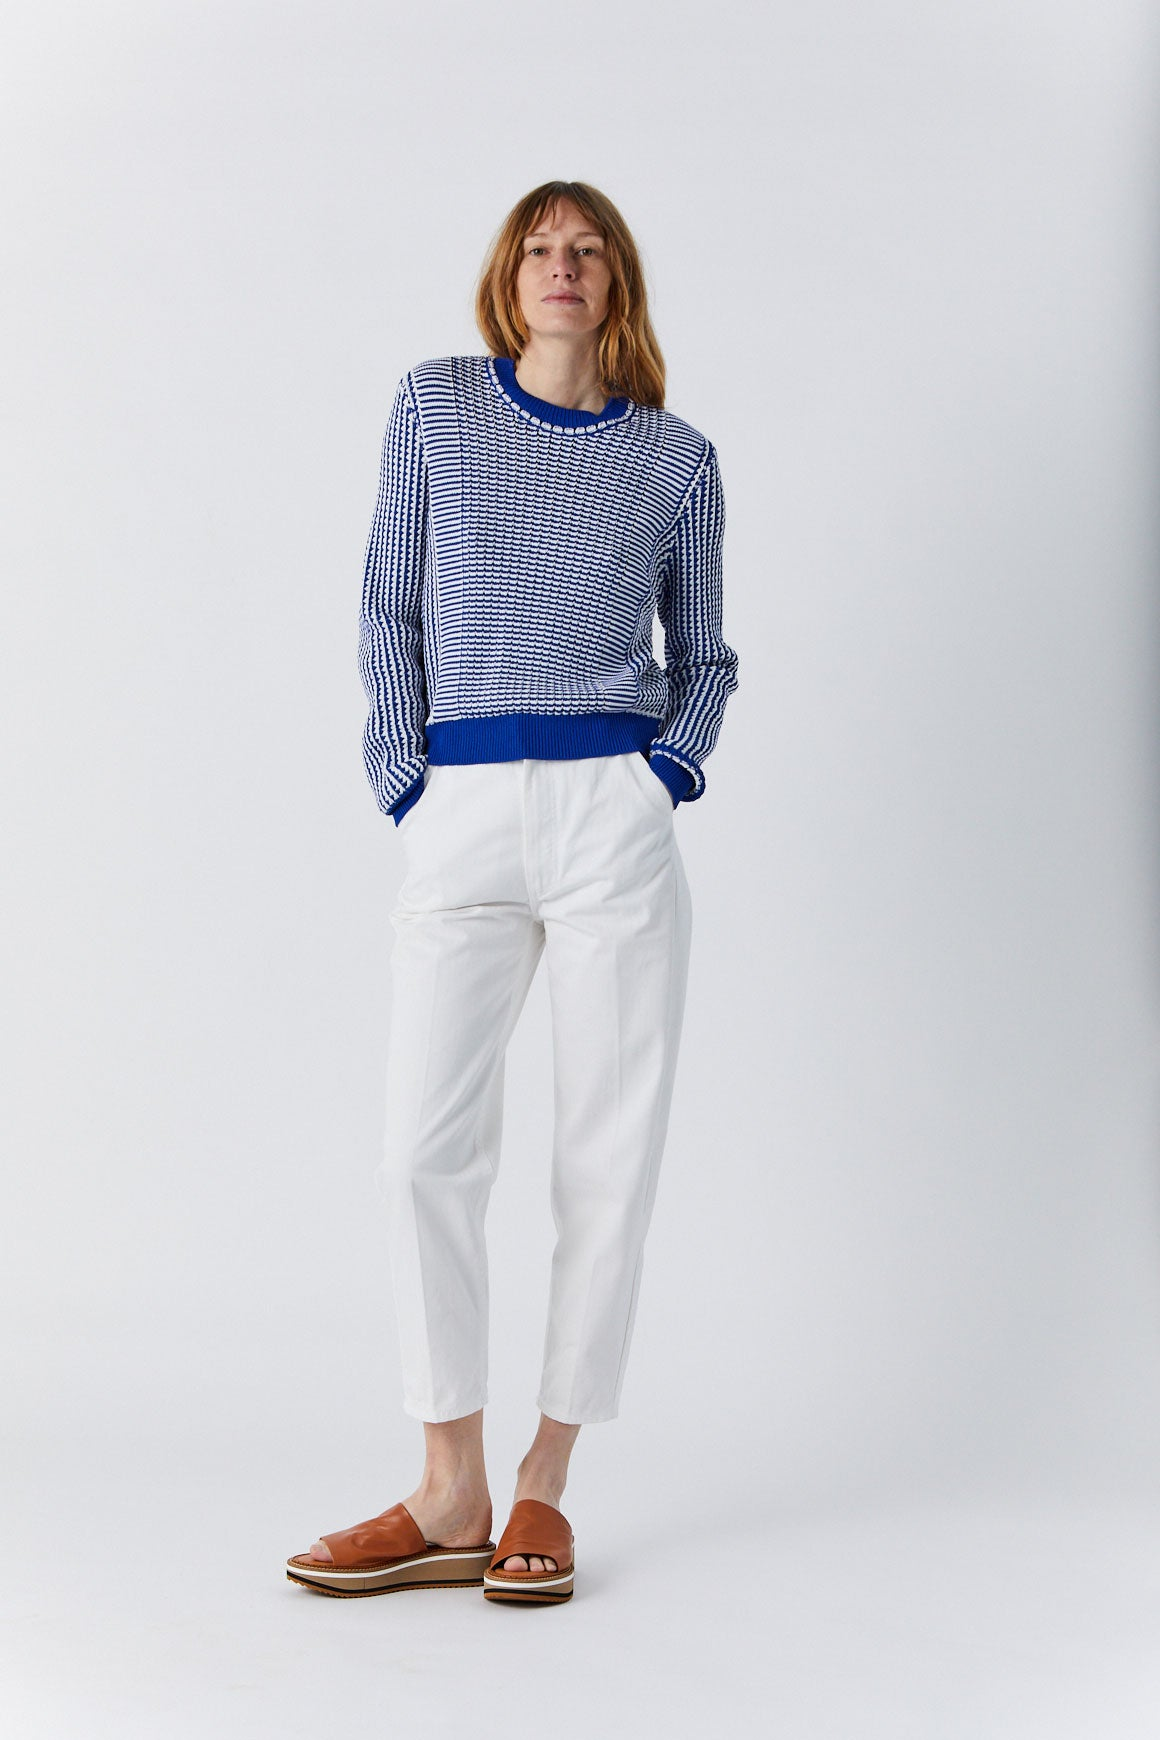 RACHEL COMEY - Carnac Pullover, Blue & White